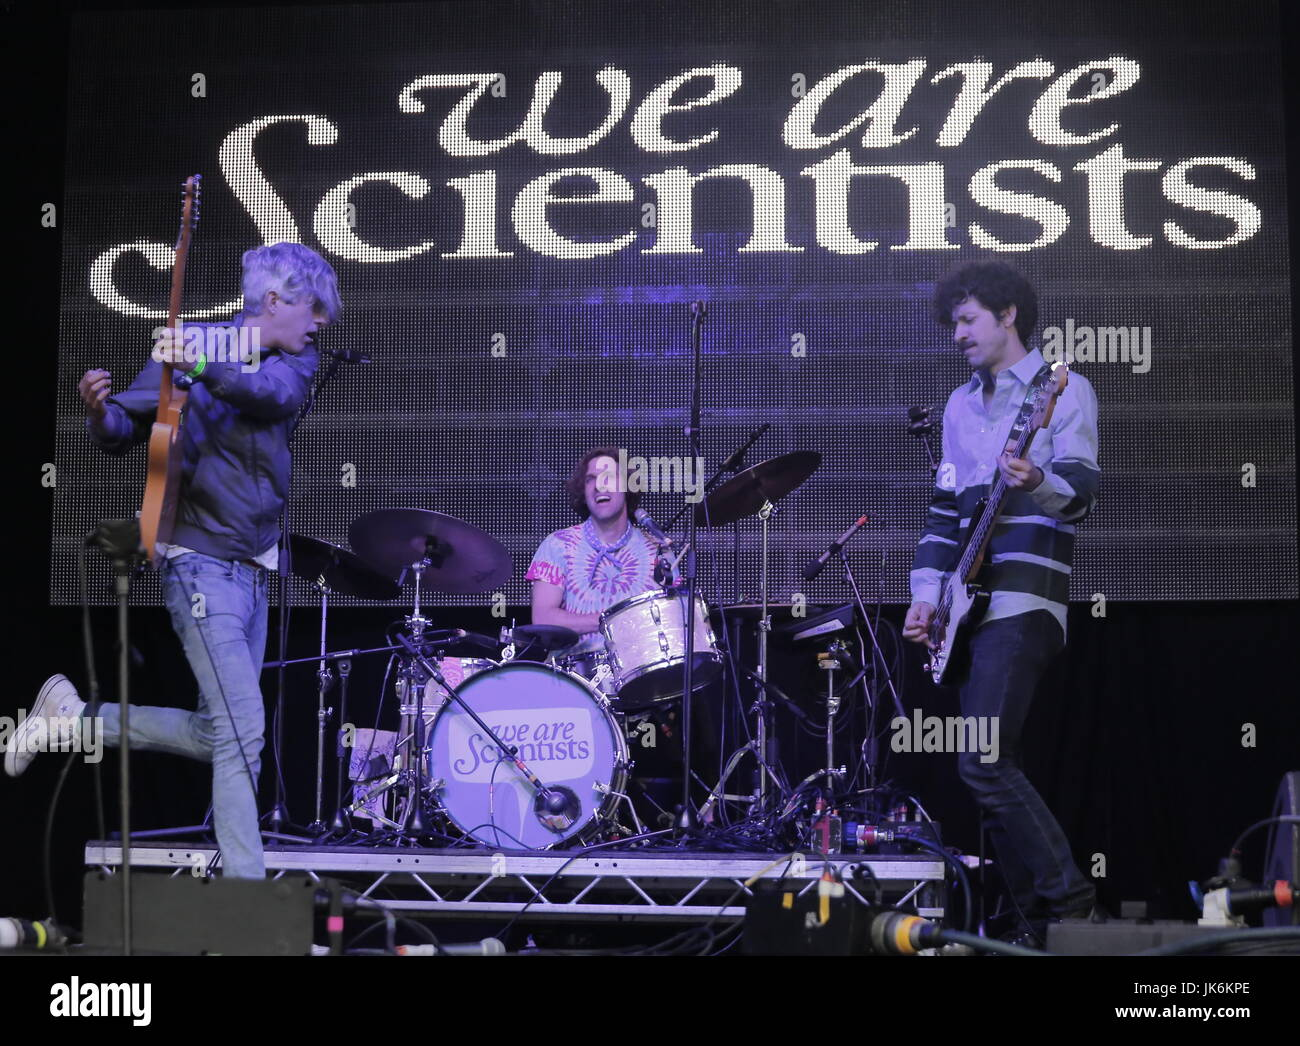 Sheffield, UK. 22nd July, 2017. American indie icons We are Scientists at Tramlines Festival, Sheffield 2017 Credit: Stock Photo